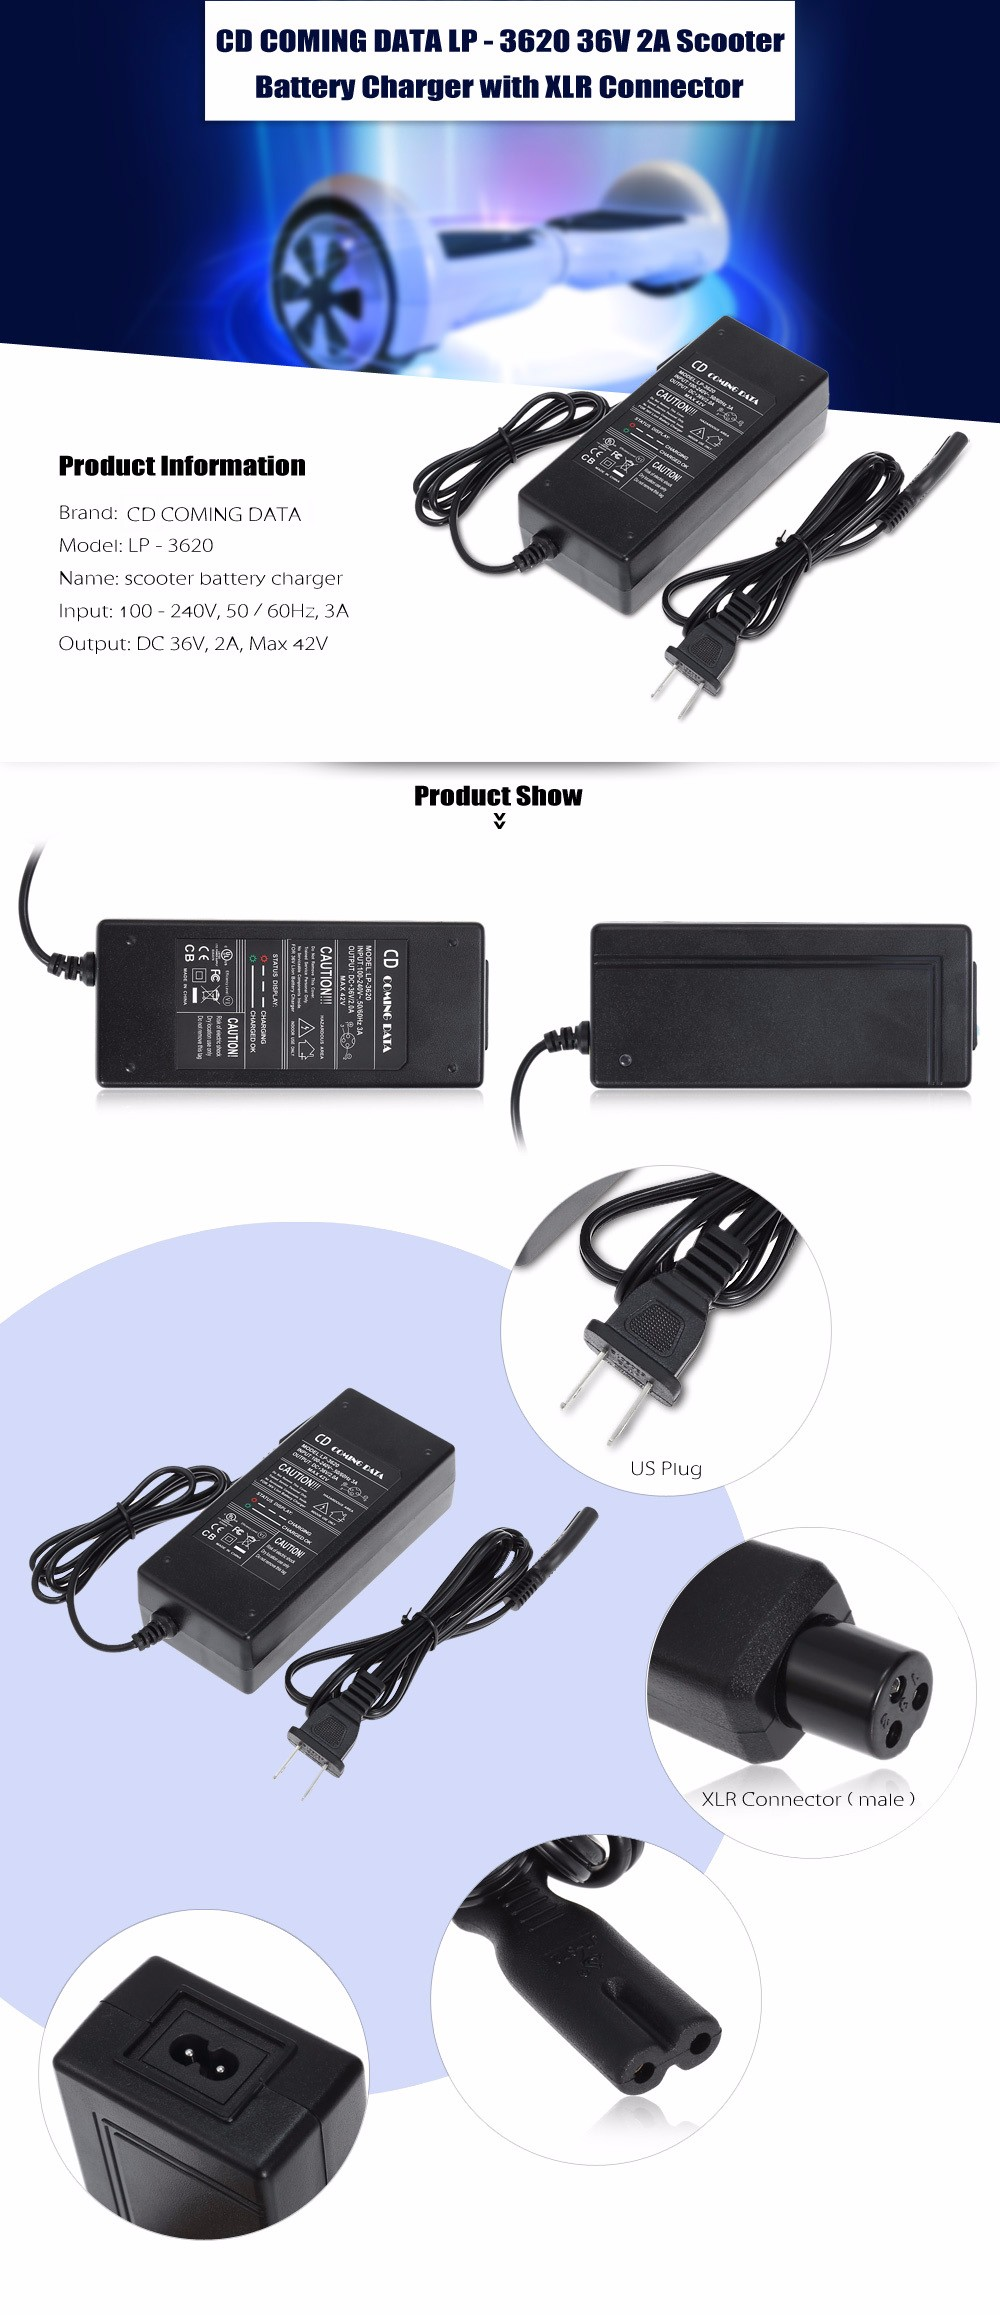 CD COMING DATA LP - 3620 36V 2A Scooter Battery Charger Adapter with XLR Connector